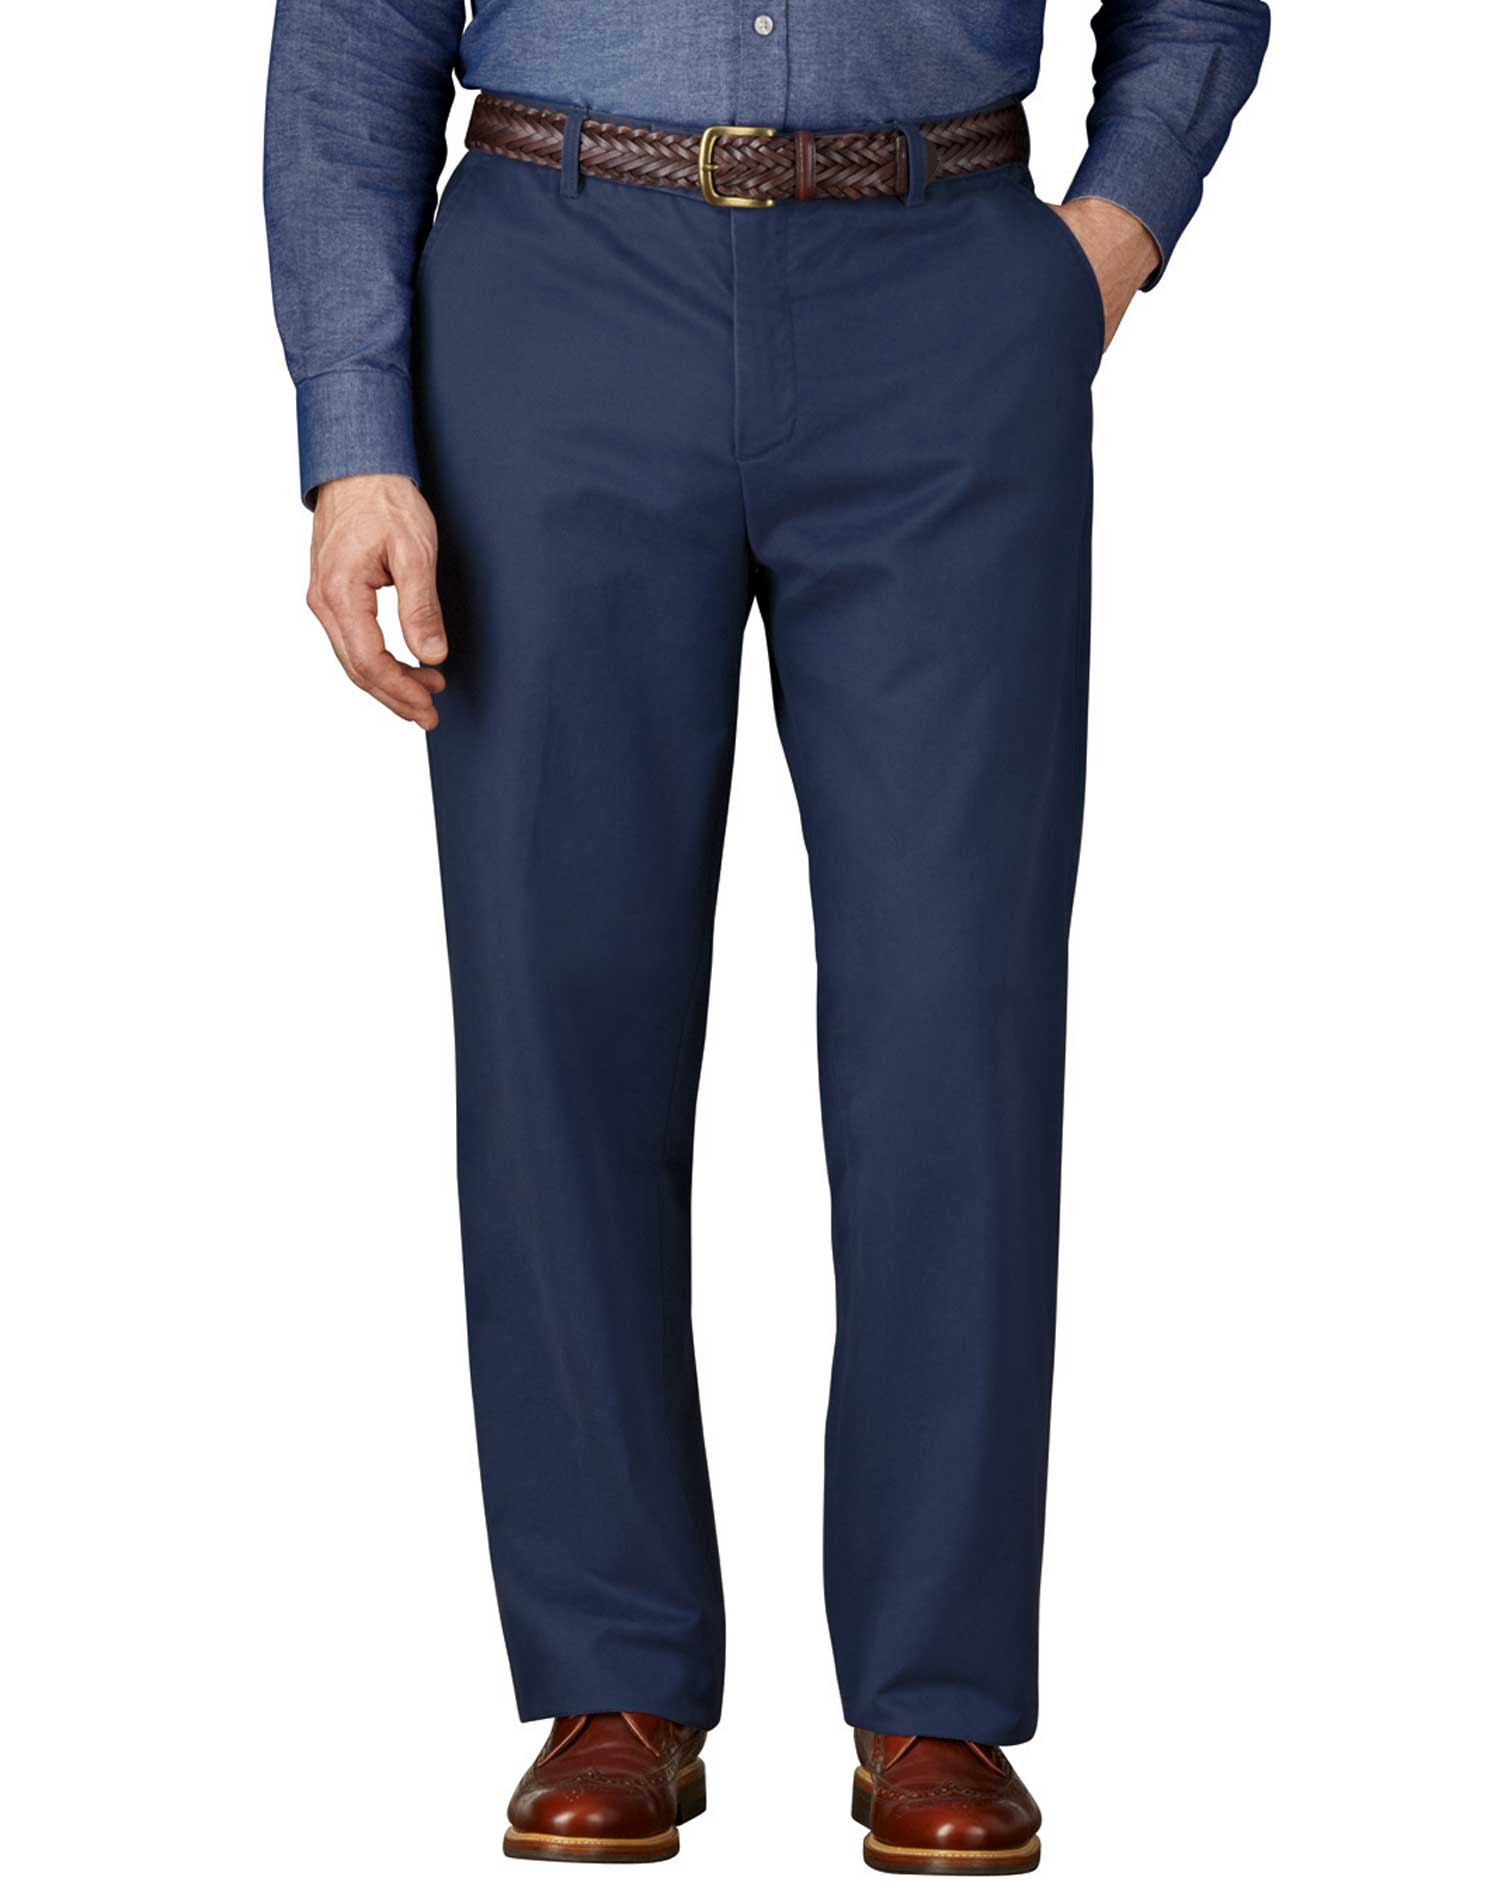 Blue Classic Fit Flat Front Weekend Cotton Chino Trousers Size W34 L29 by Charles Tyrwhitt